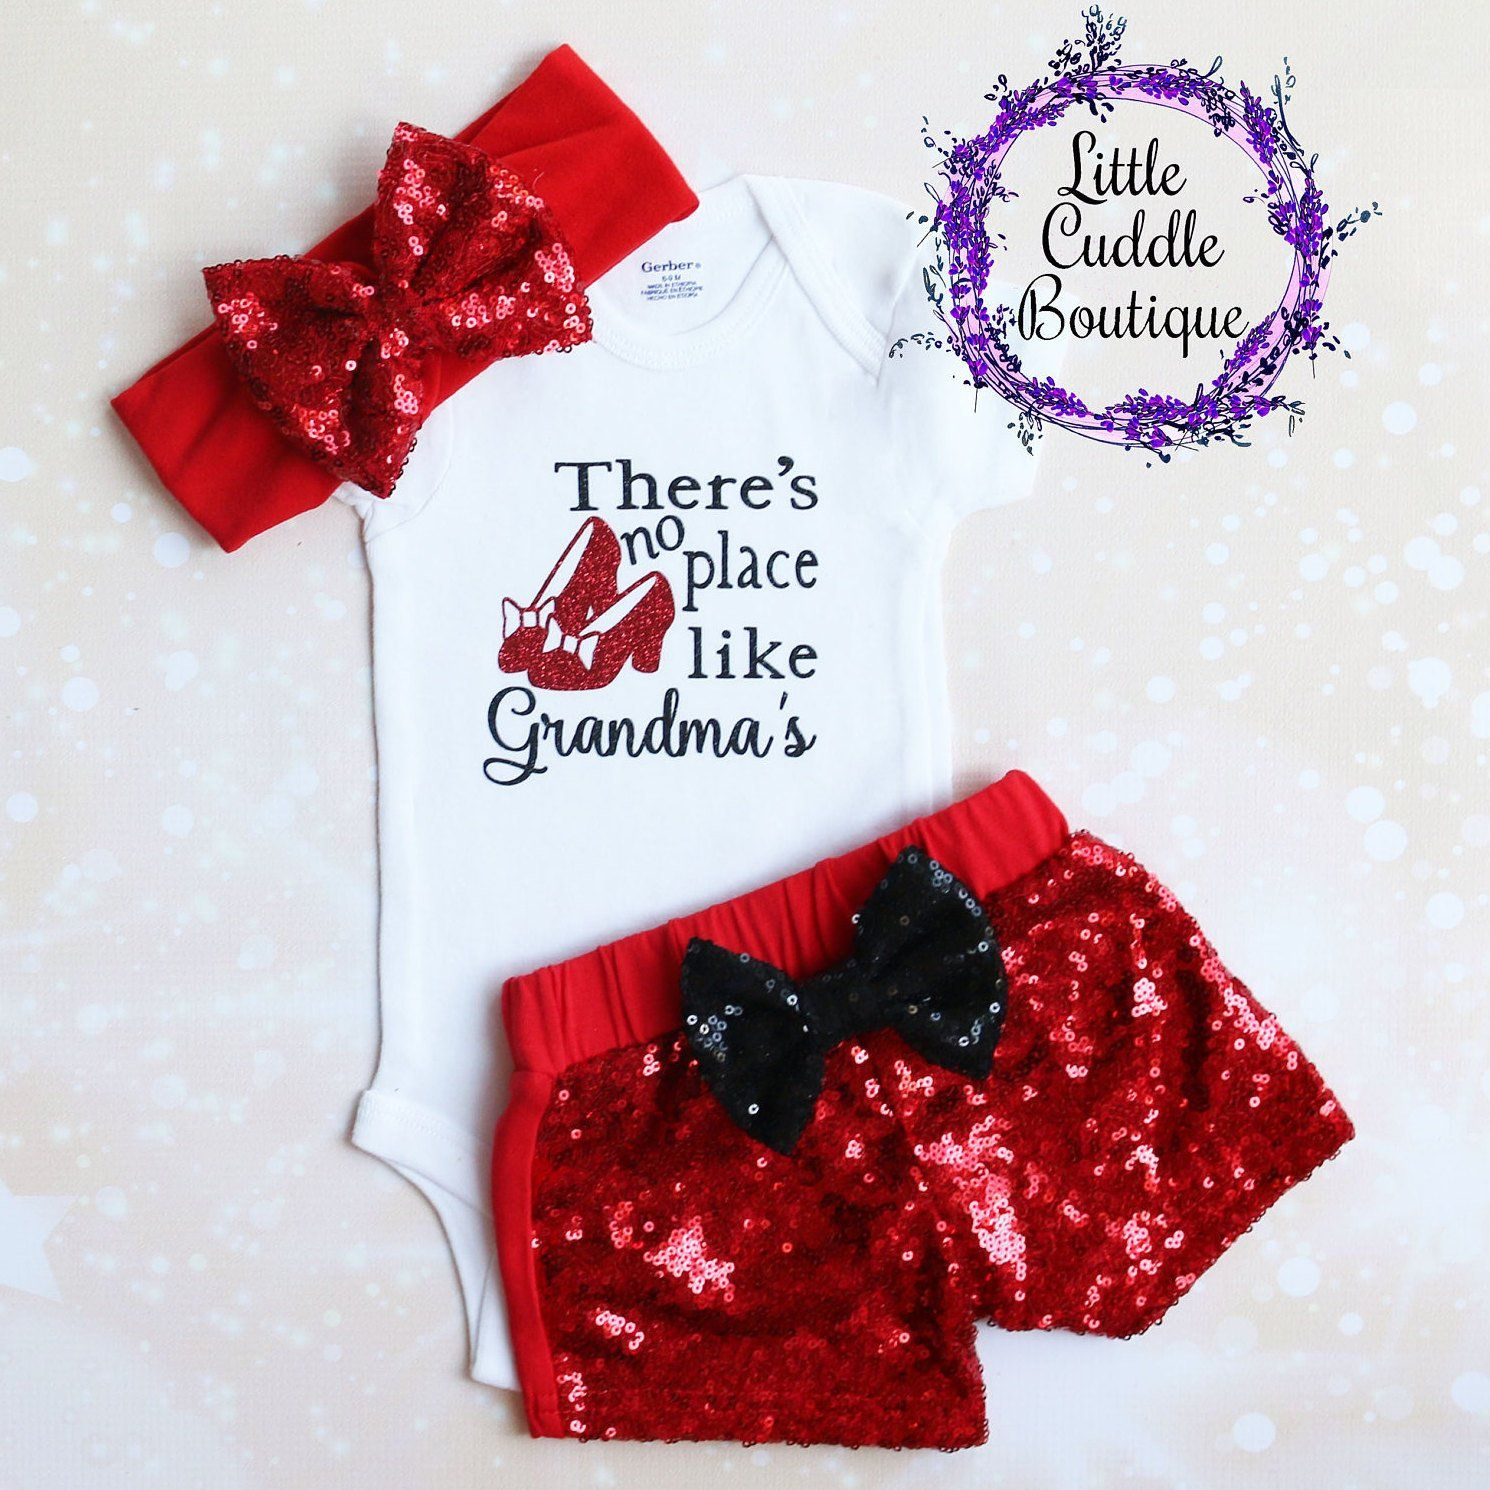 Baby Gift From Grandma Details about  /There/'s No Place Like Grandma/'s Baby Outfit Grandma